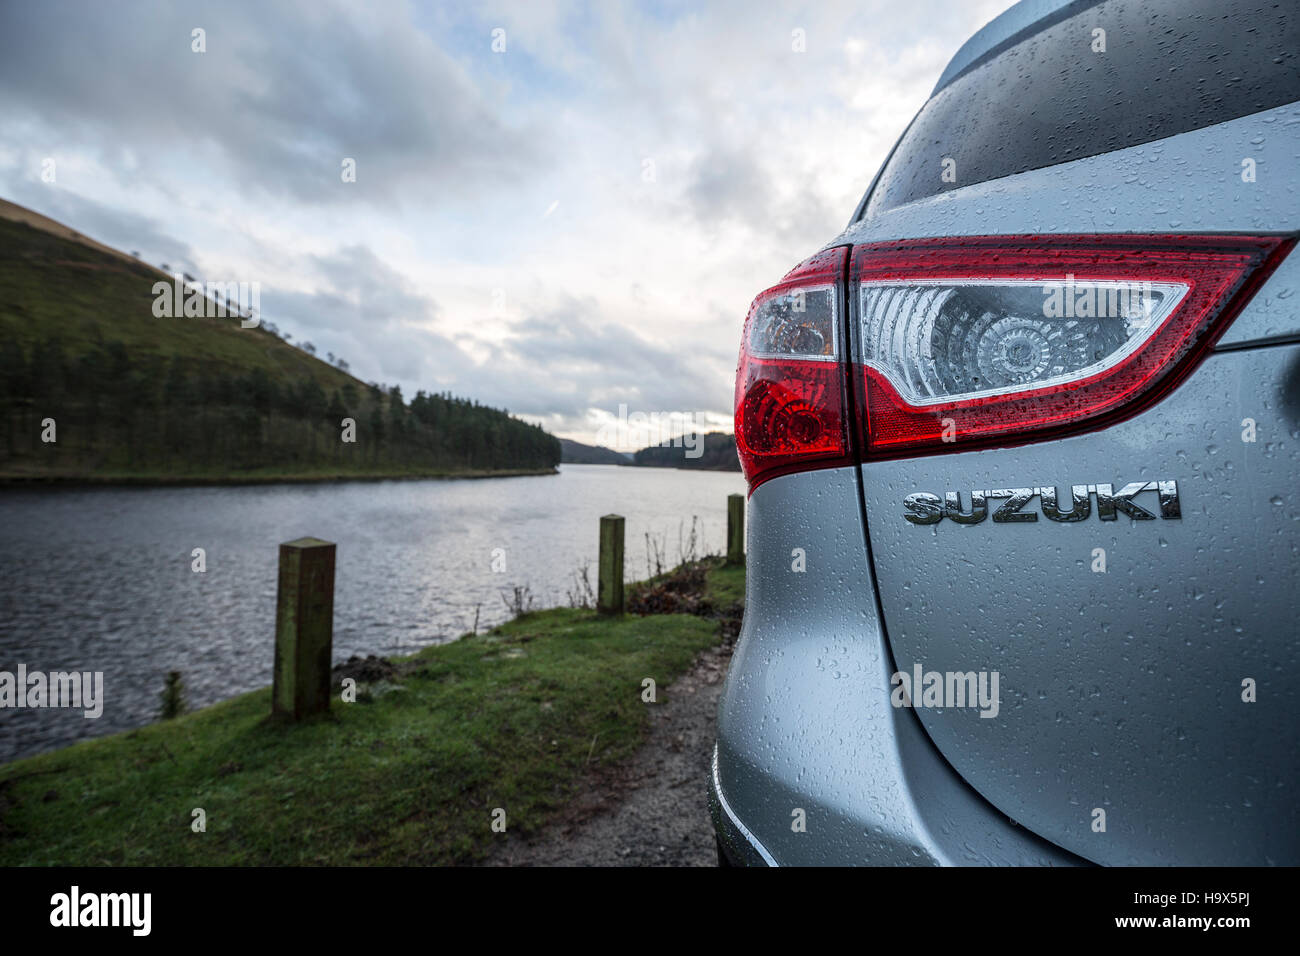 Back light of rain covered Suzuki car with water in the background Derbyshire England - Stock Image